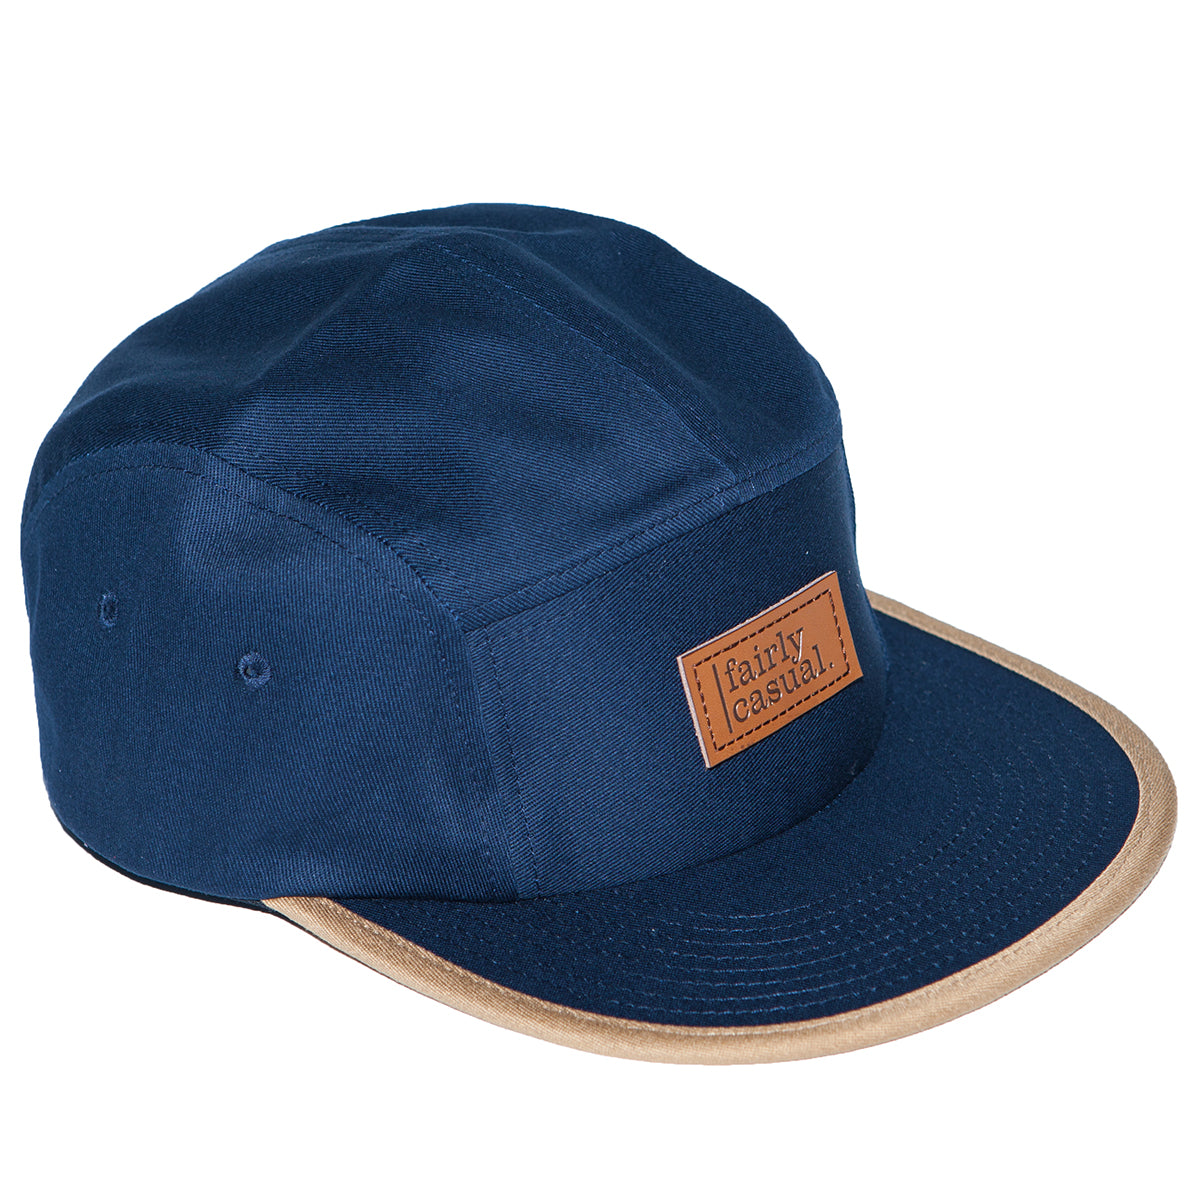 Camper 5-Panel - Fairly Casual - Hats